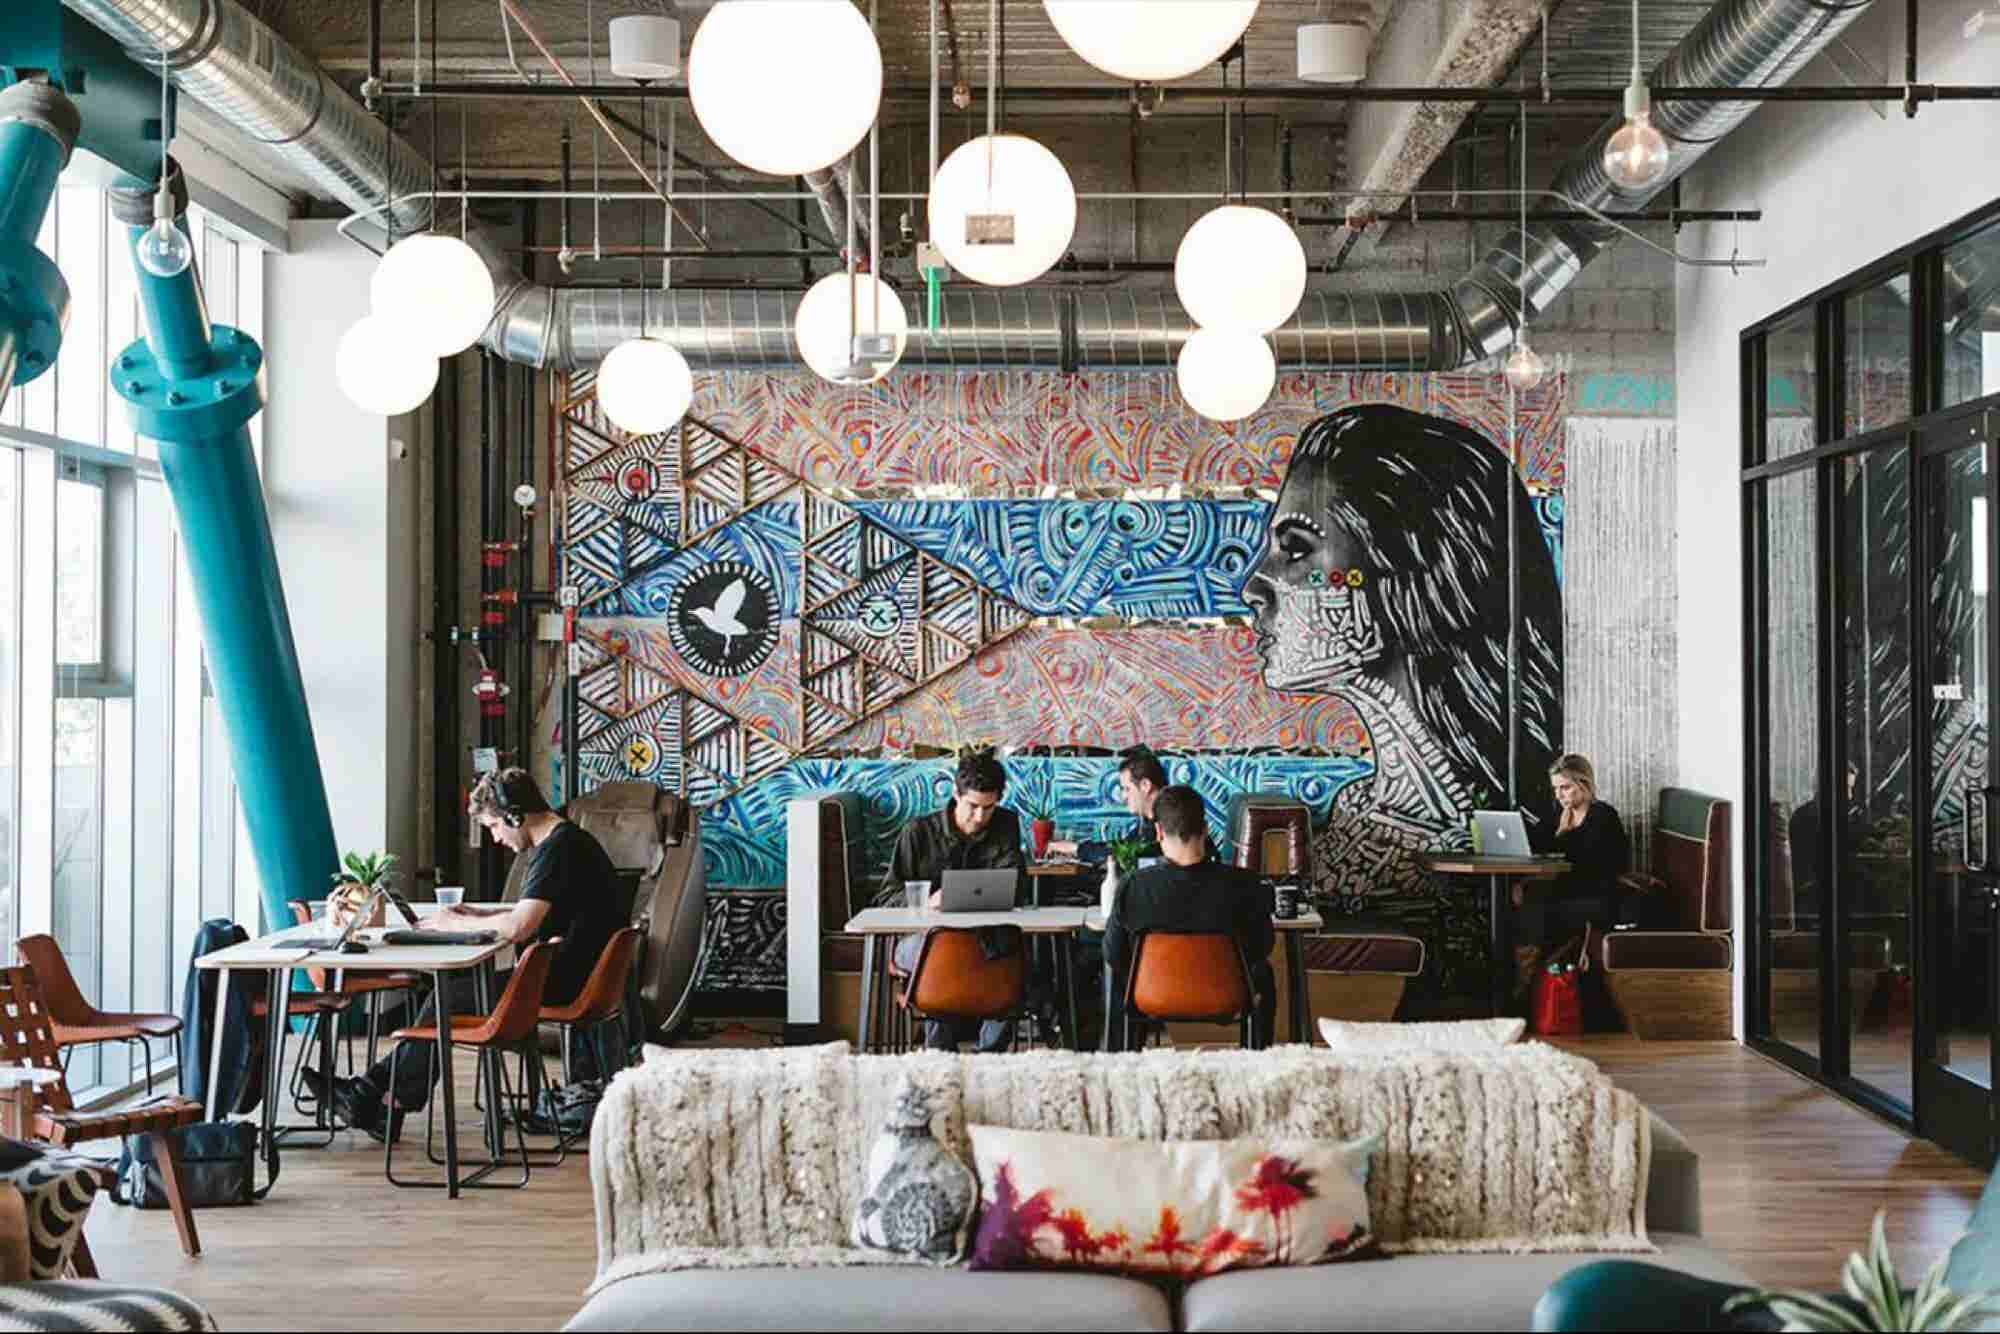 12 Crazy Things You Should Know About WeWork, the Coworking Company Va...